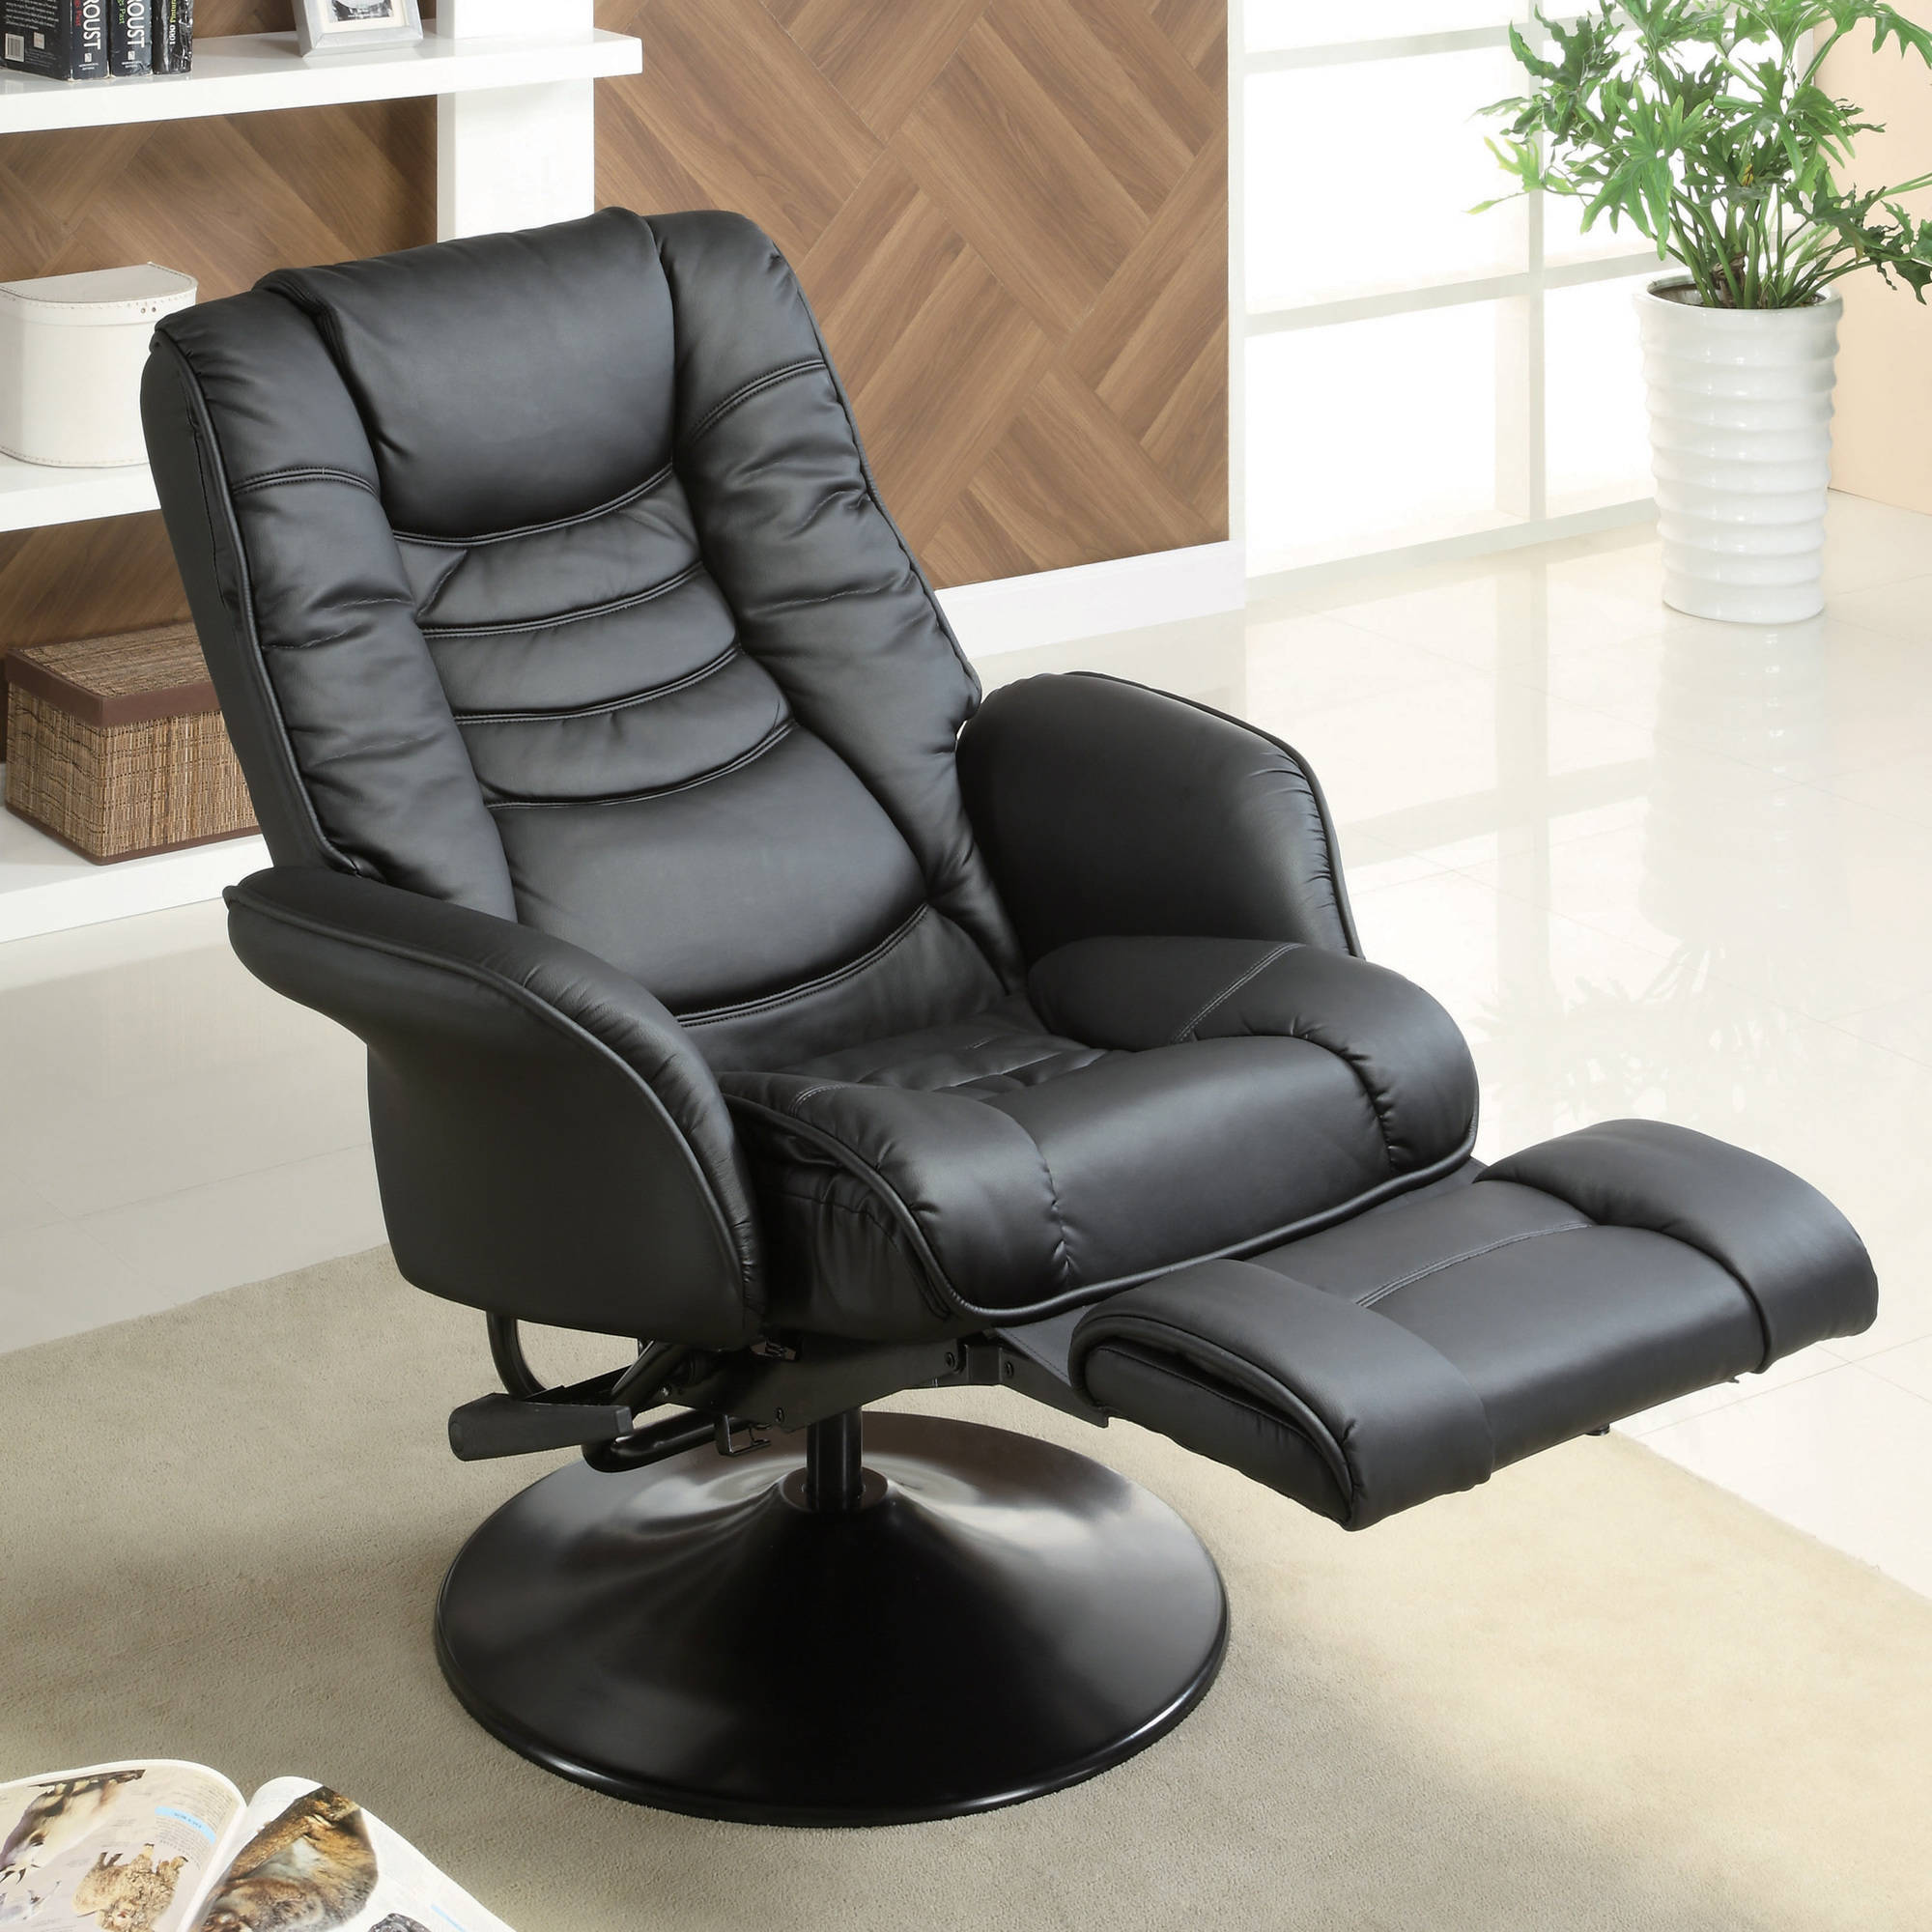 relaxer do black exist beautiful chairs rated chair recliners they recliner advertisement best